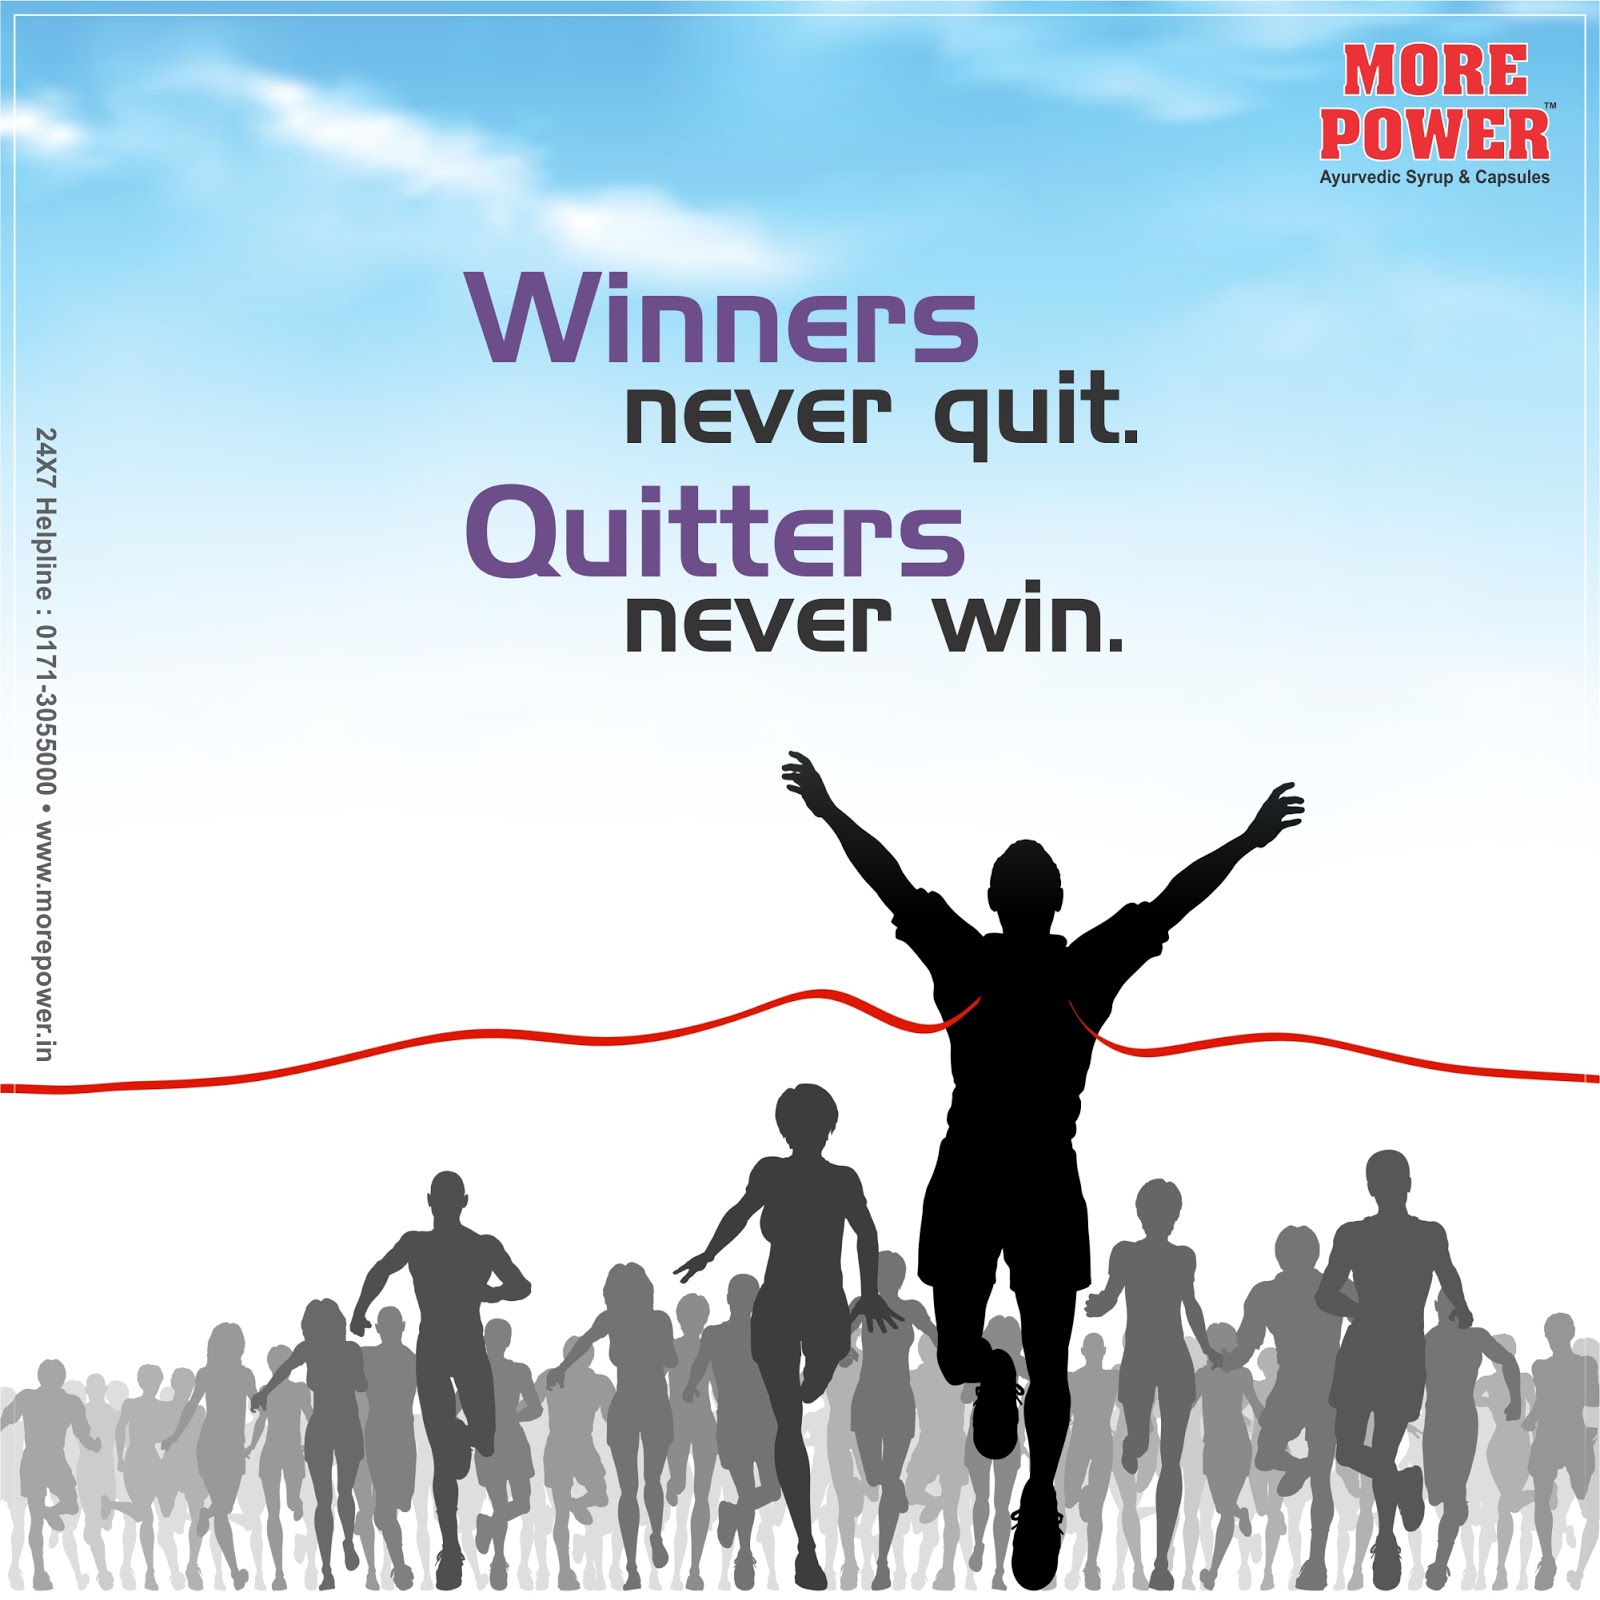 Thought Of The Day Motivational Jokes & Thoughts Monday Motivational Thought On Winners